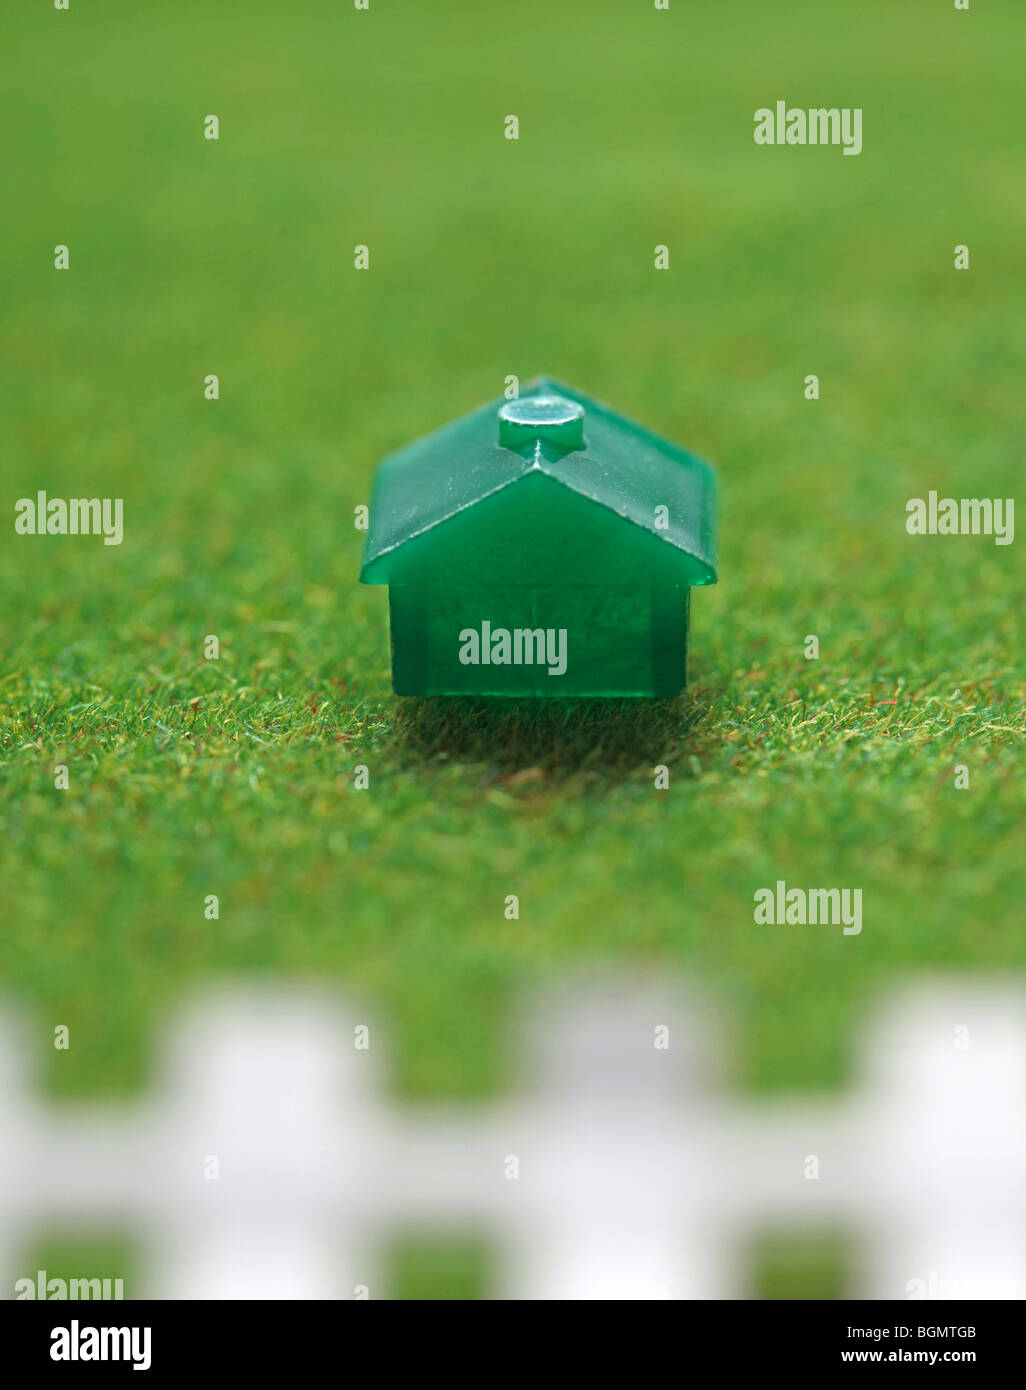 Monopoly house on green grass with white picket fence. - Stock Image